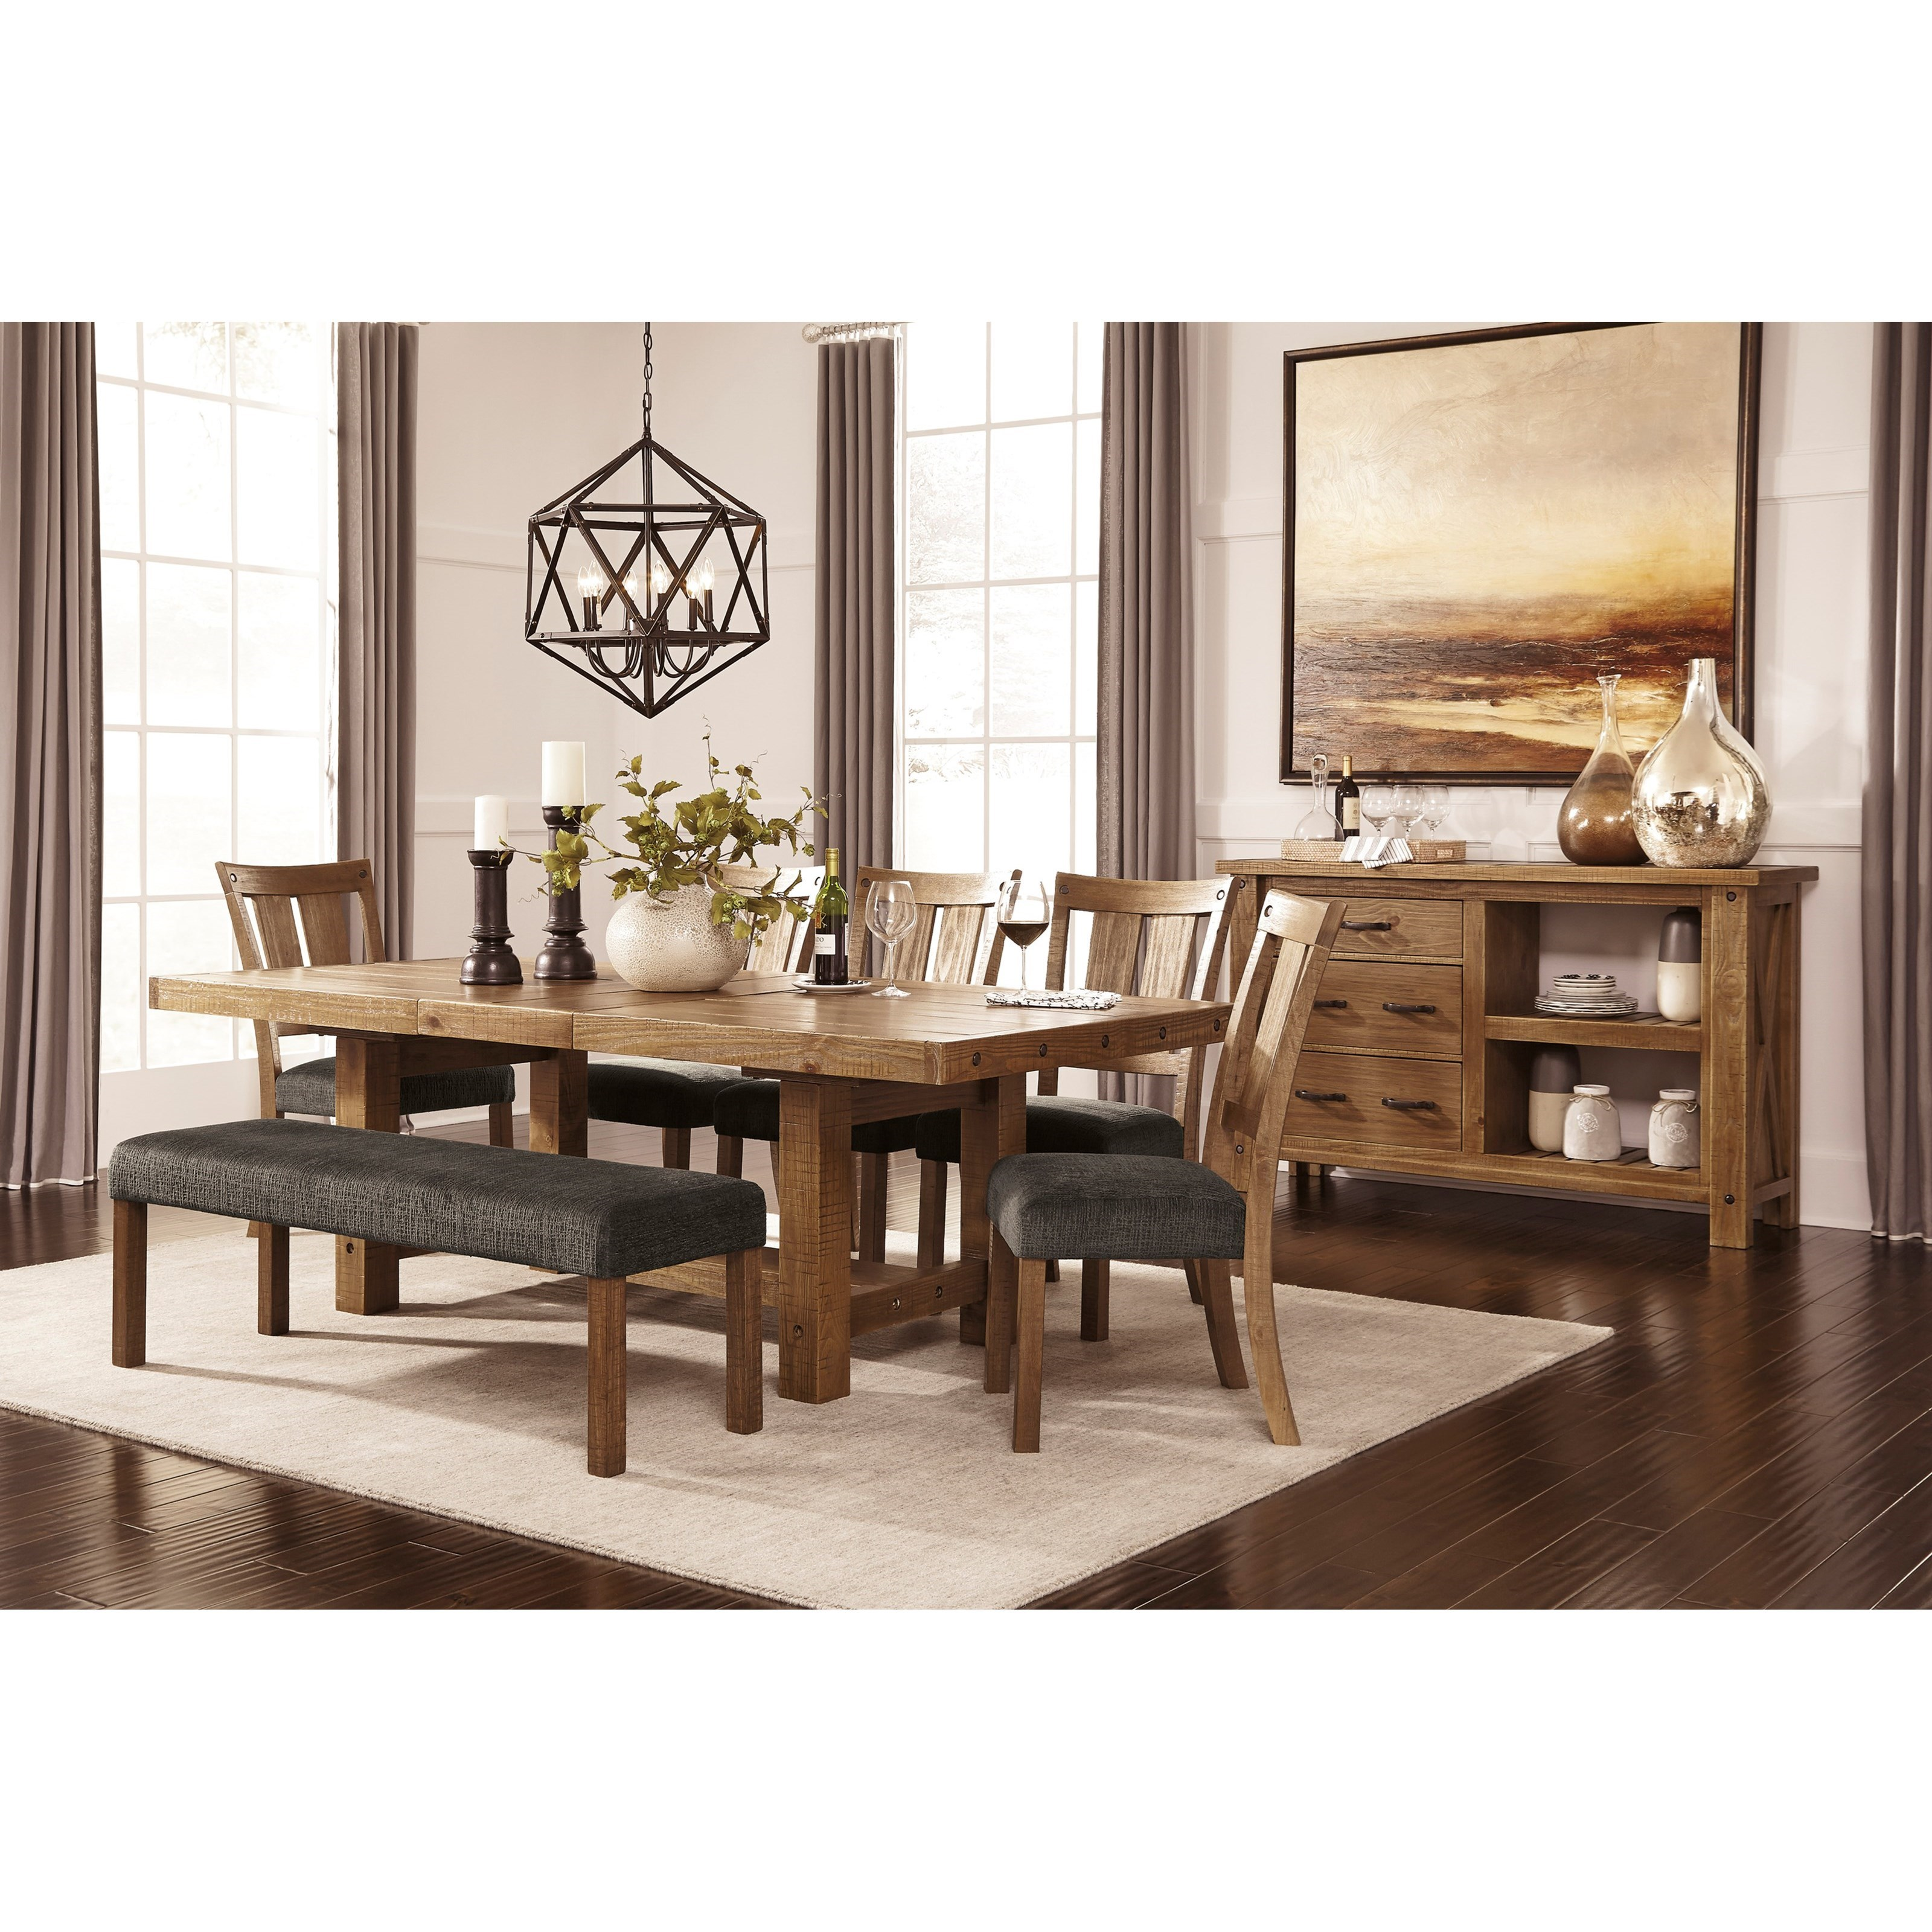 Signature Design by Ashley Tamilo Formal Dining Room Group - Item Number: D714 Dining Room Group 4